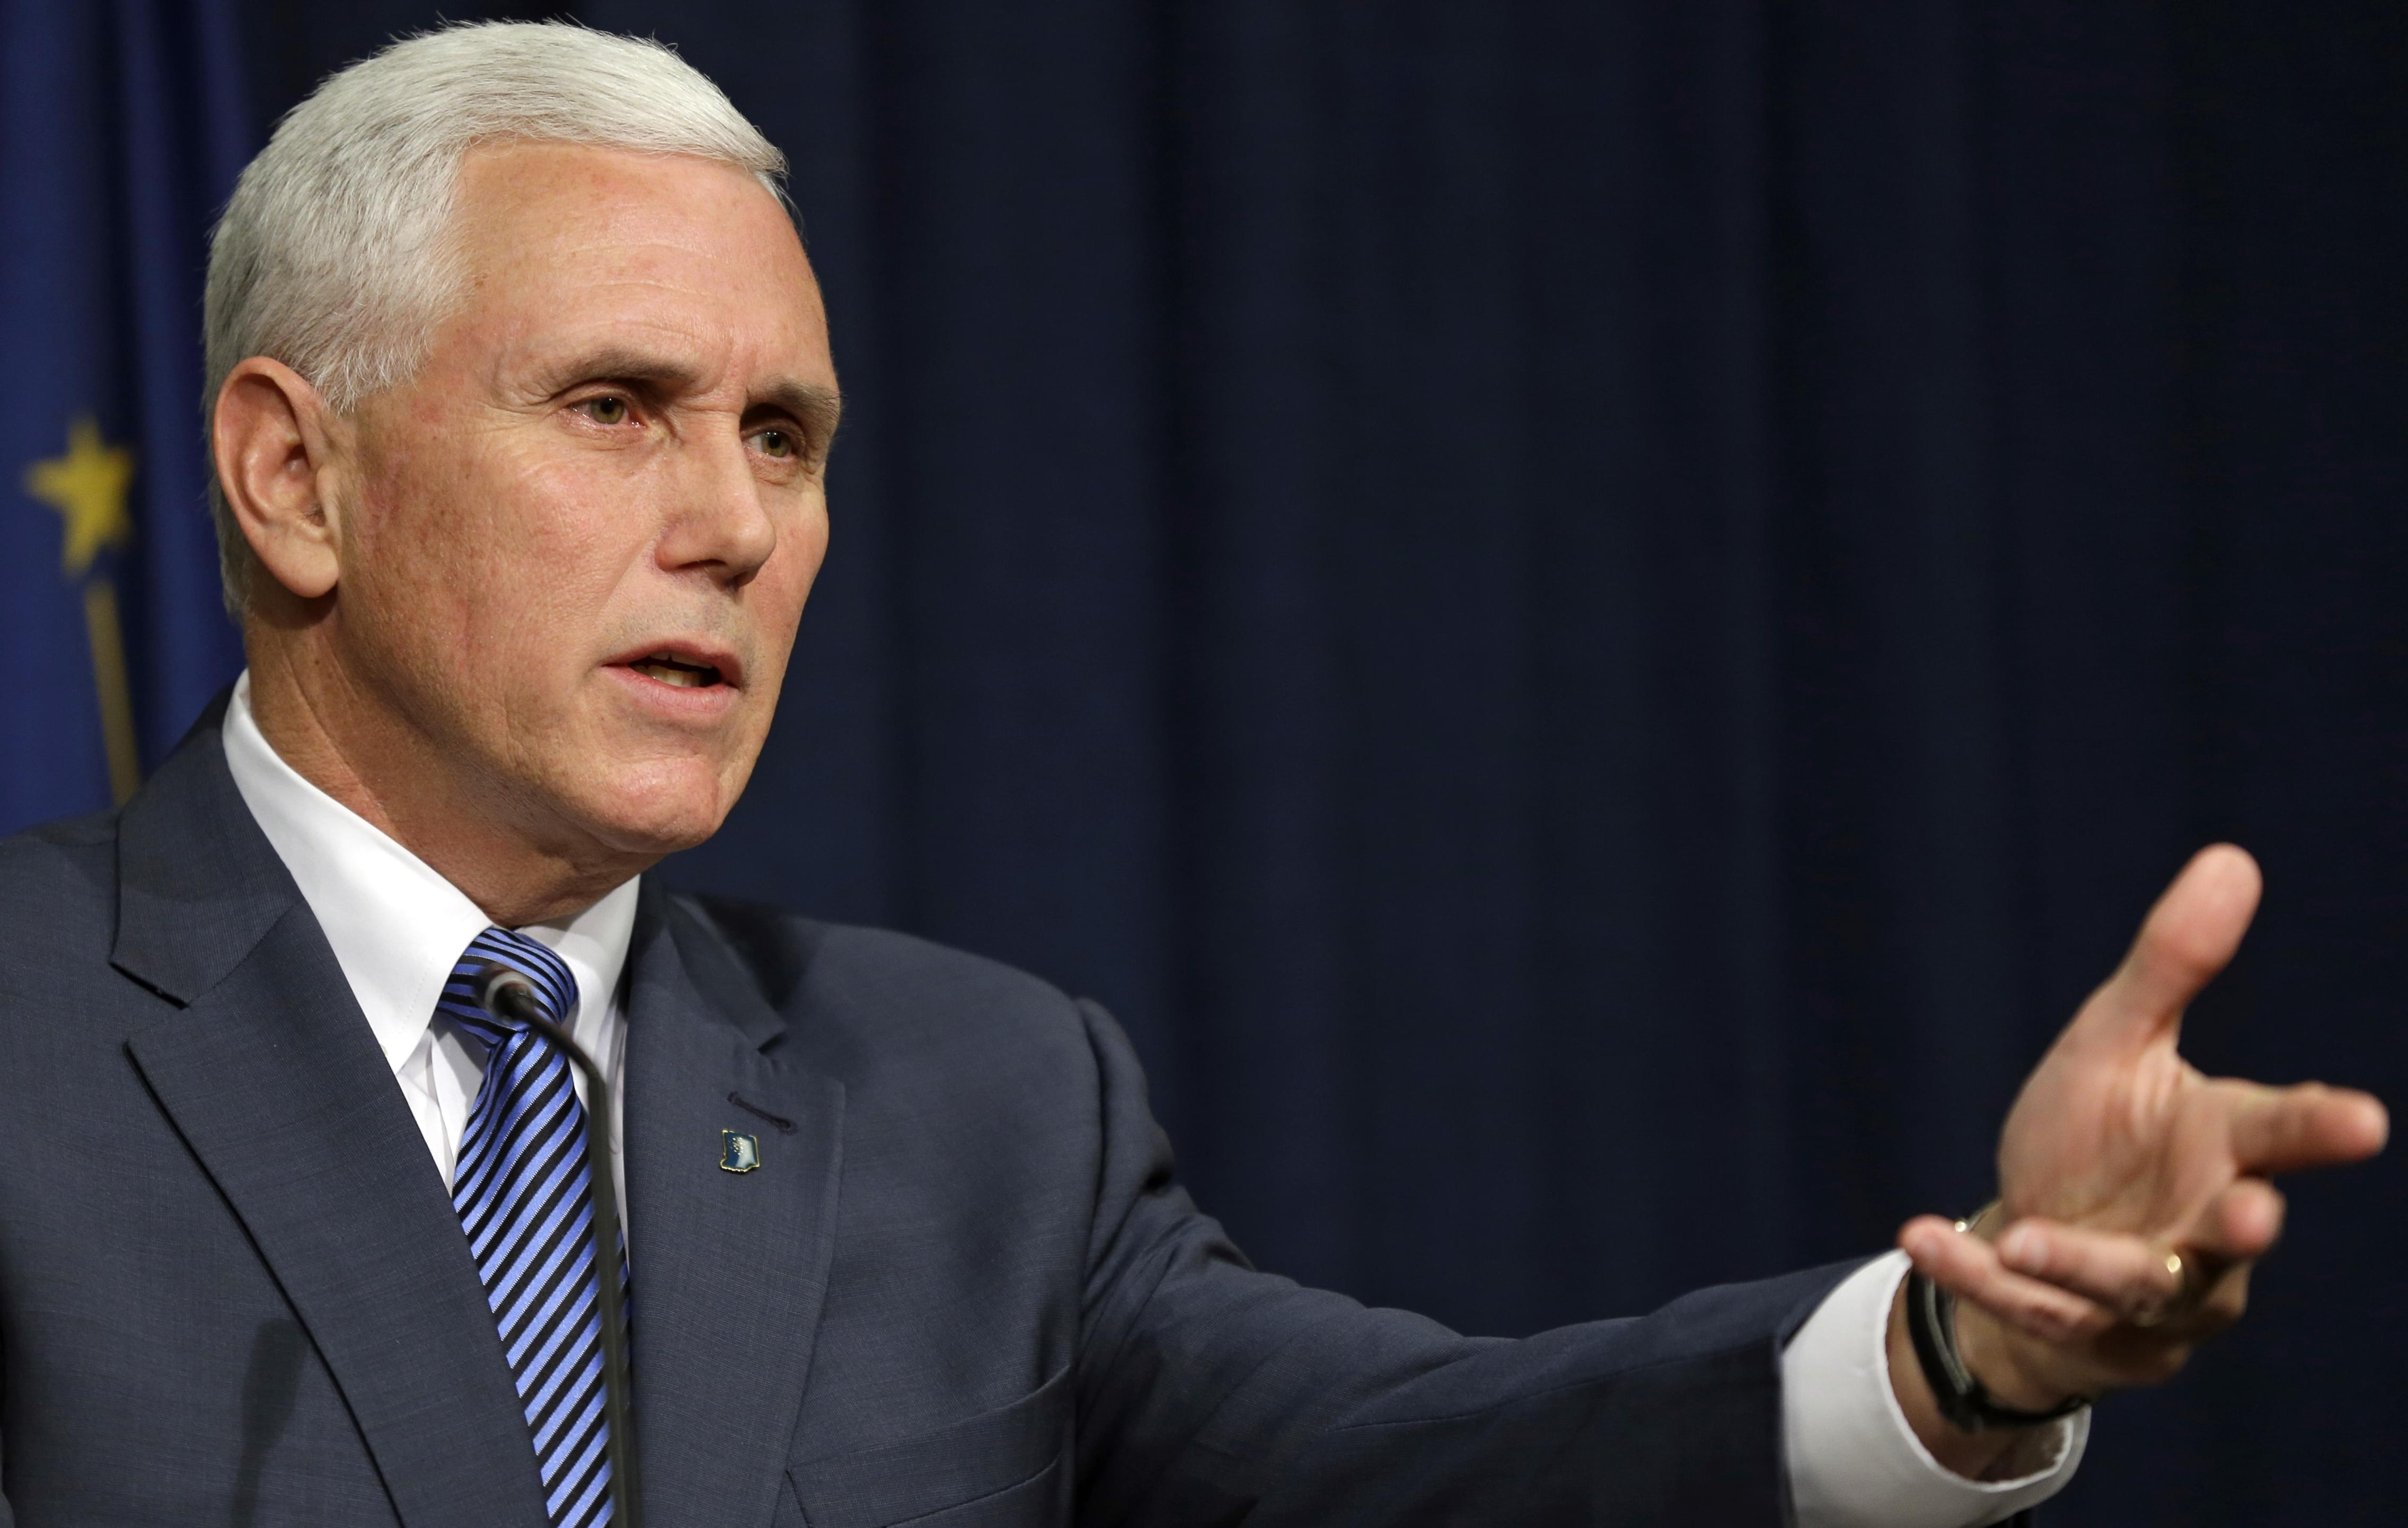 Indiana Governor Mike Pence holds a news conference on March 26.